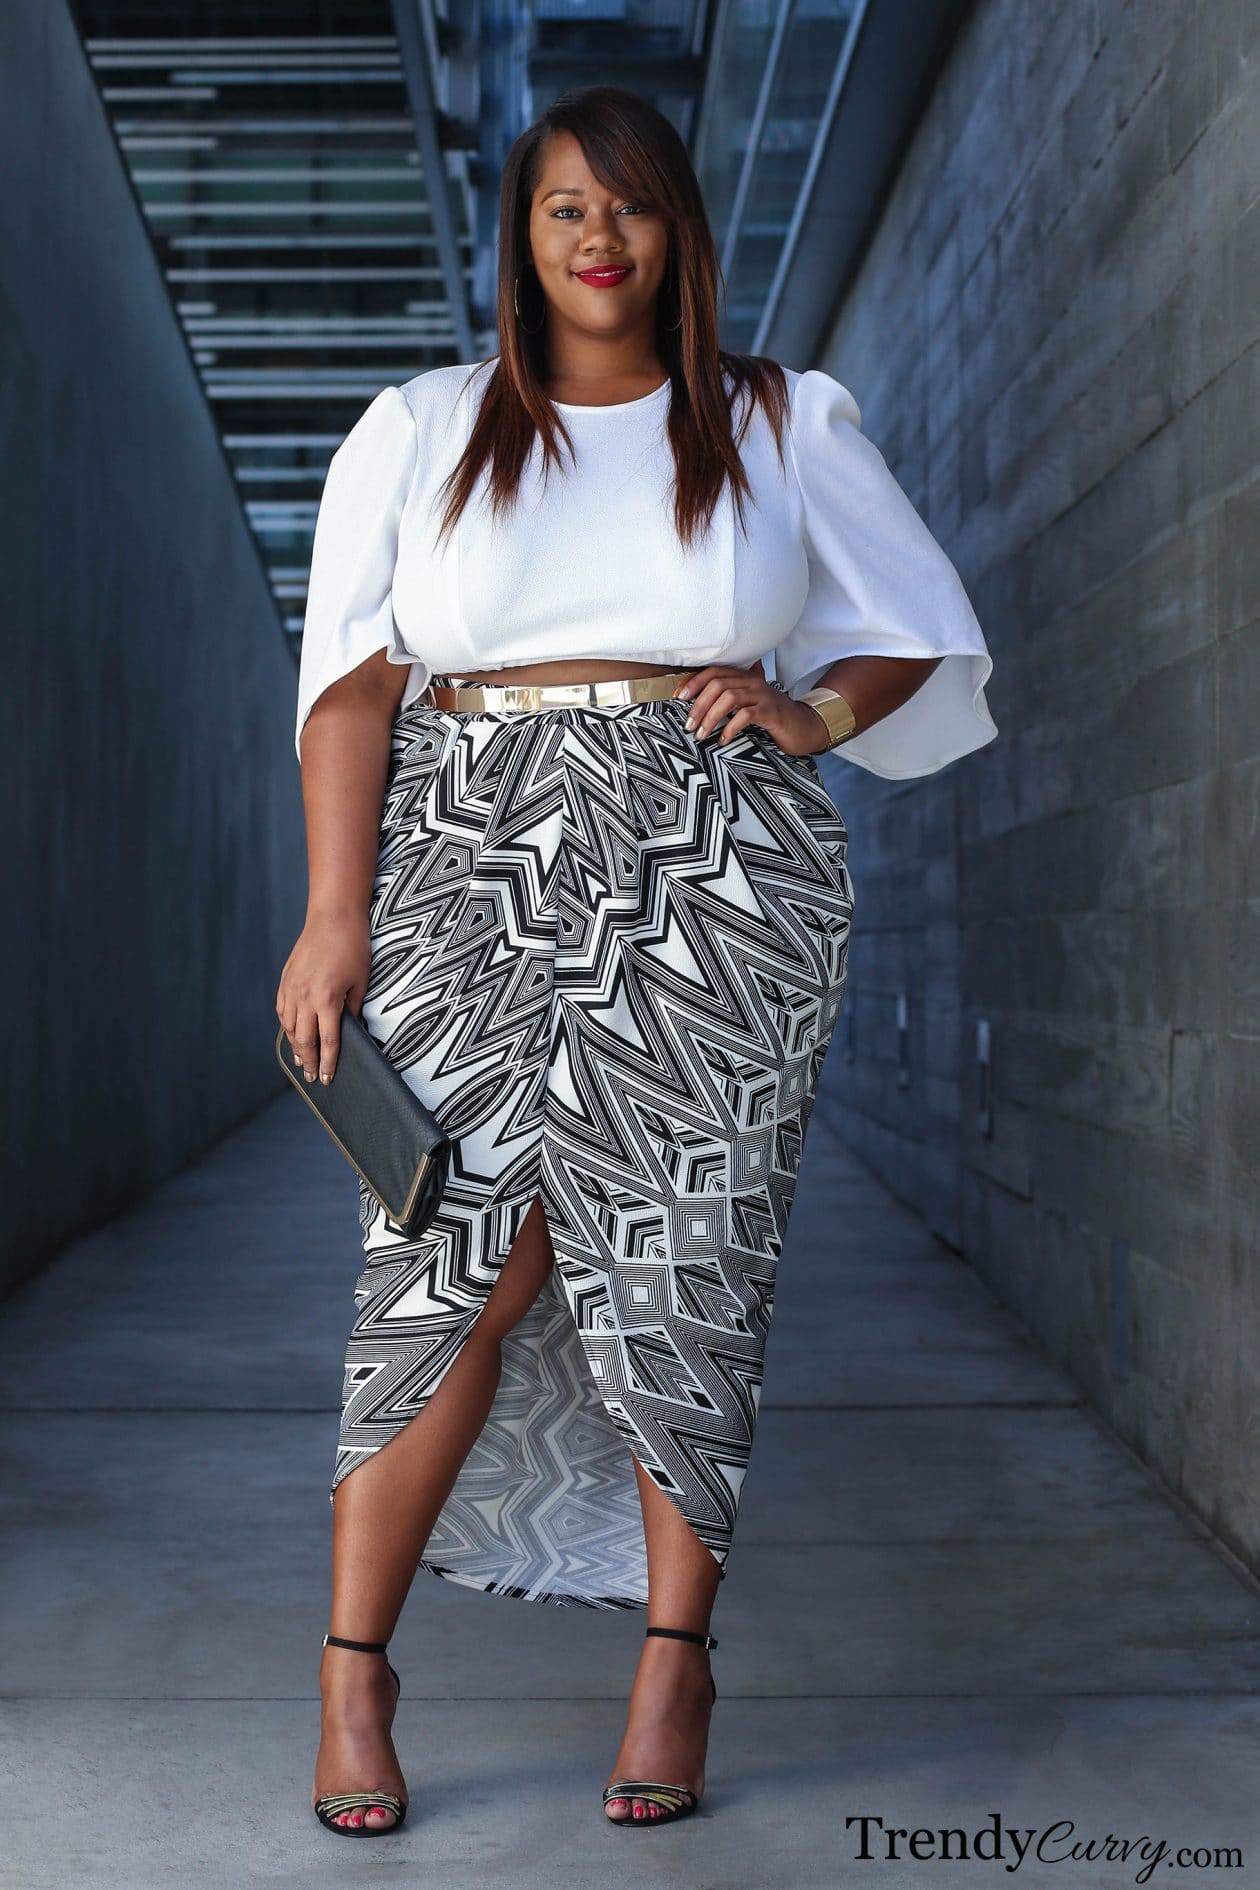 Trendy Fashionable 11 13 Year Old Ethnic Multi Cultural: Fashion Blogger Spotlight: Kristine Of TrendyCurvy